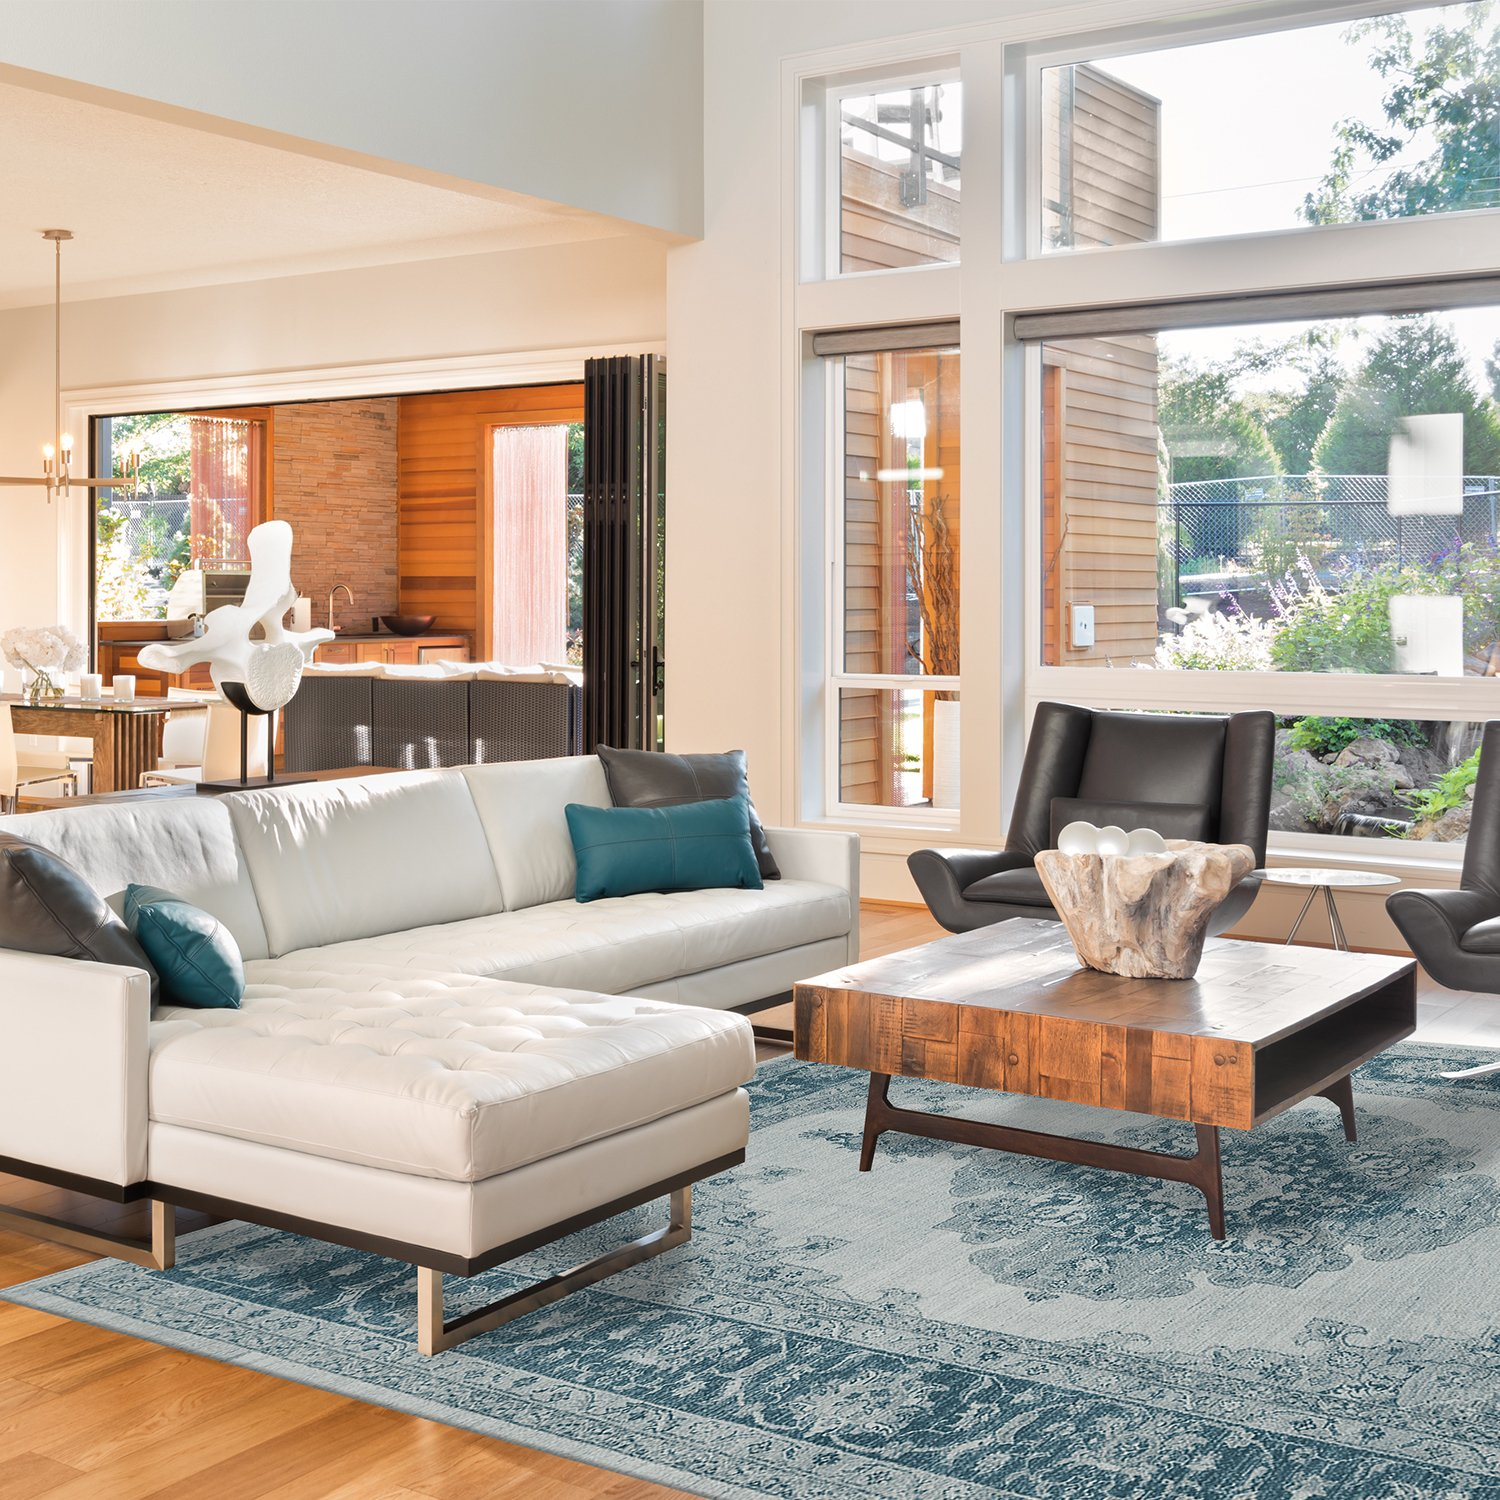 Stain Resistant blue area rug in living room